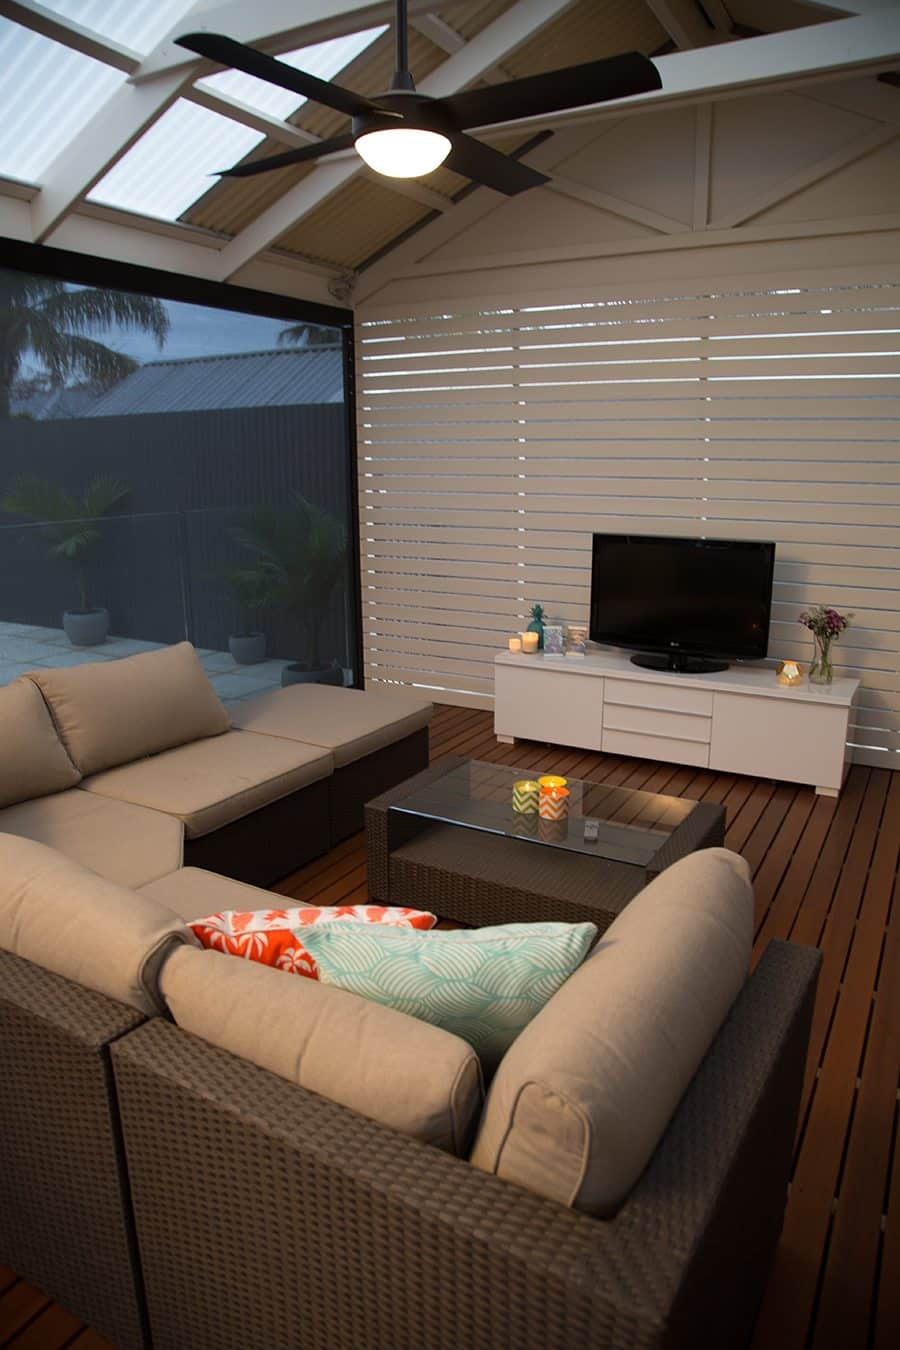 Spice Up Your Verandah Design with these Fresh Ideas - Lounge around on a verandah from Australian Outdoor Living, Australian Outdoor Living.